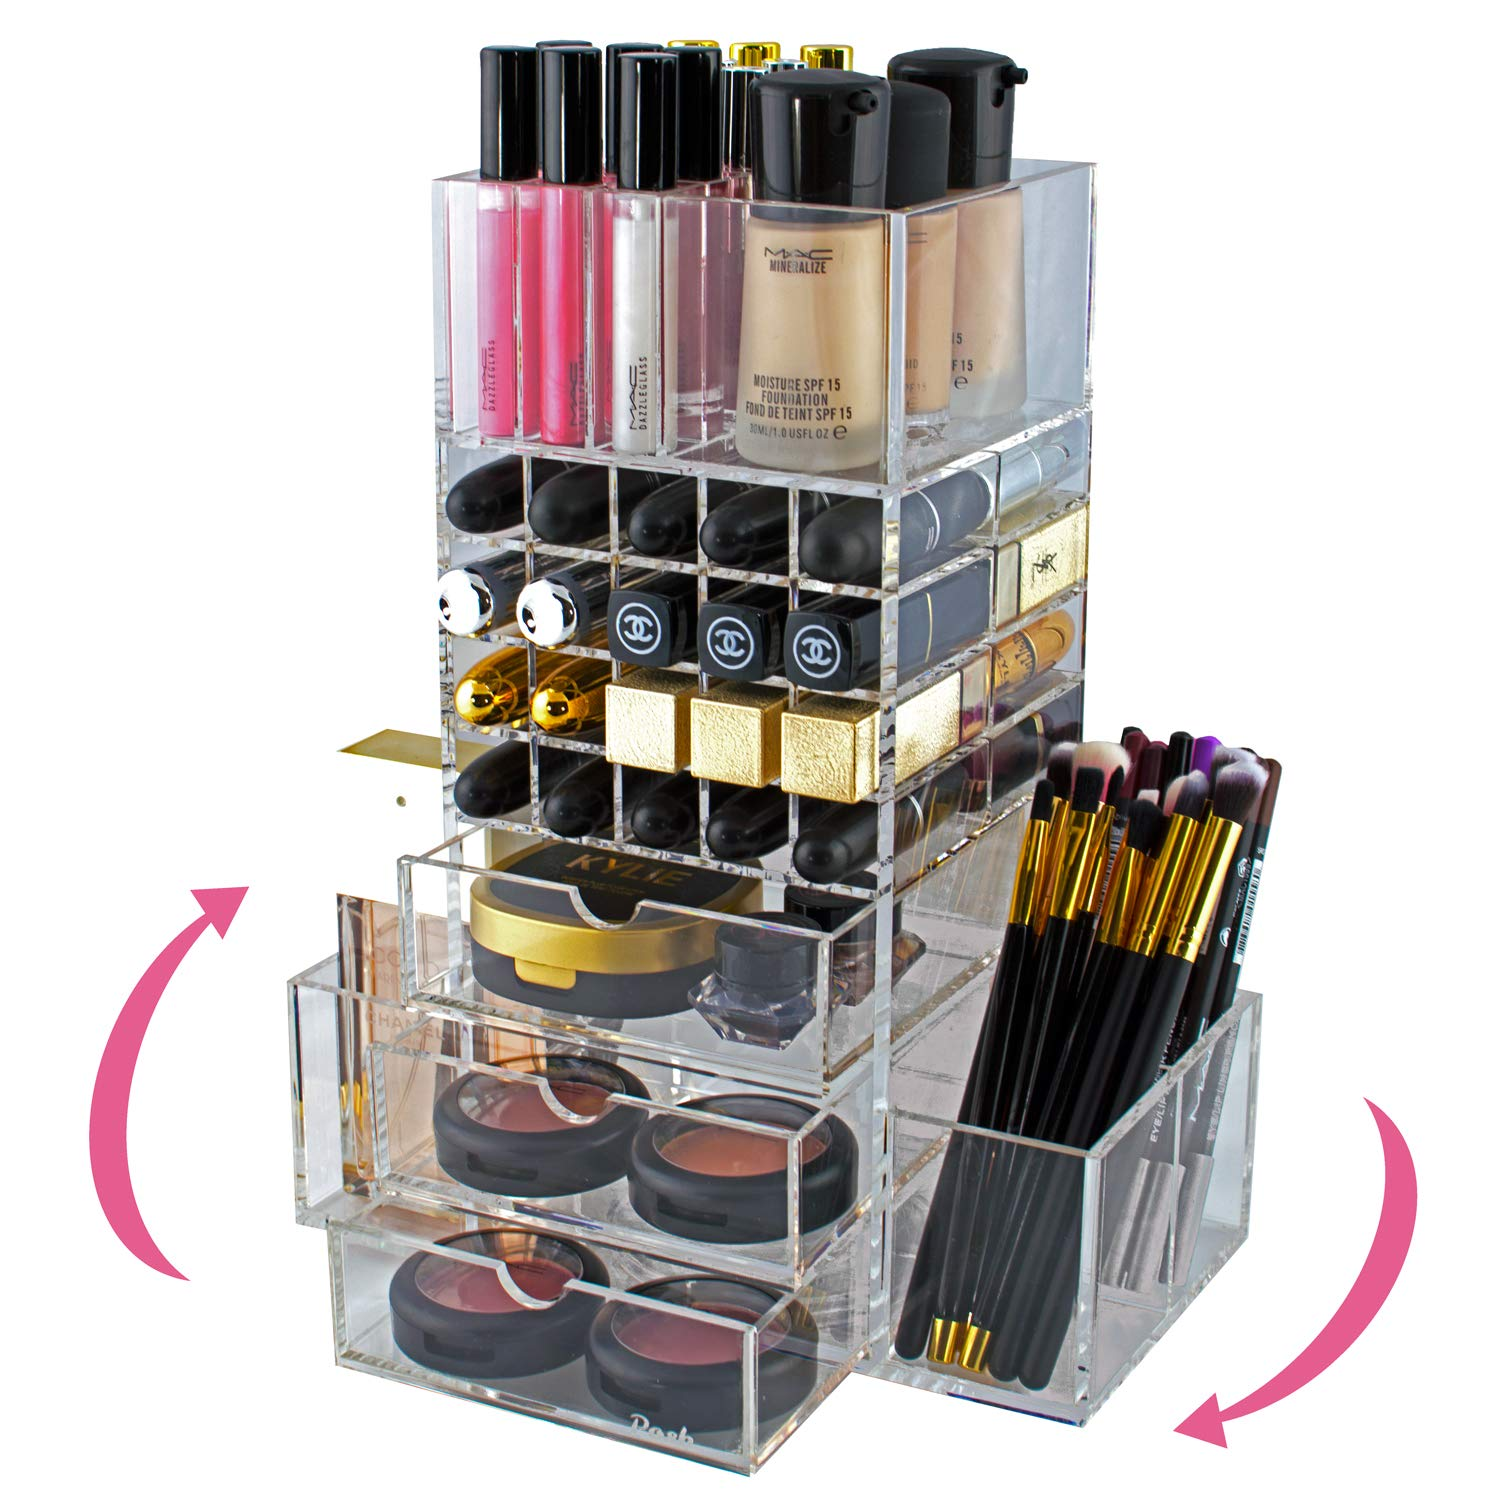 Spinning Makeup Organizer Rotating Tower - golden birthday gift ideas for her